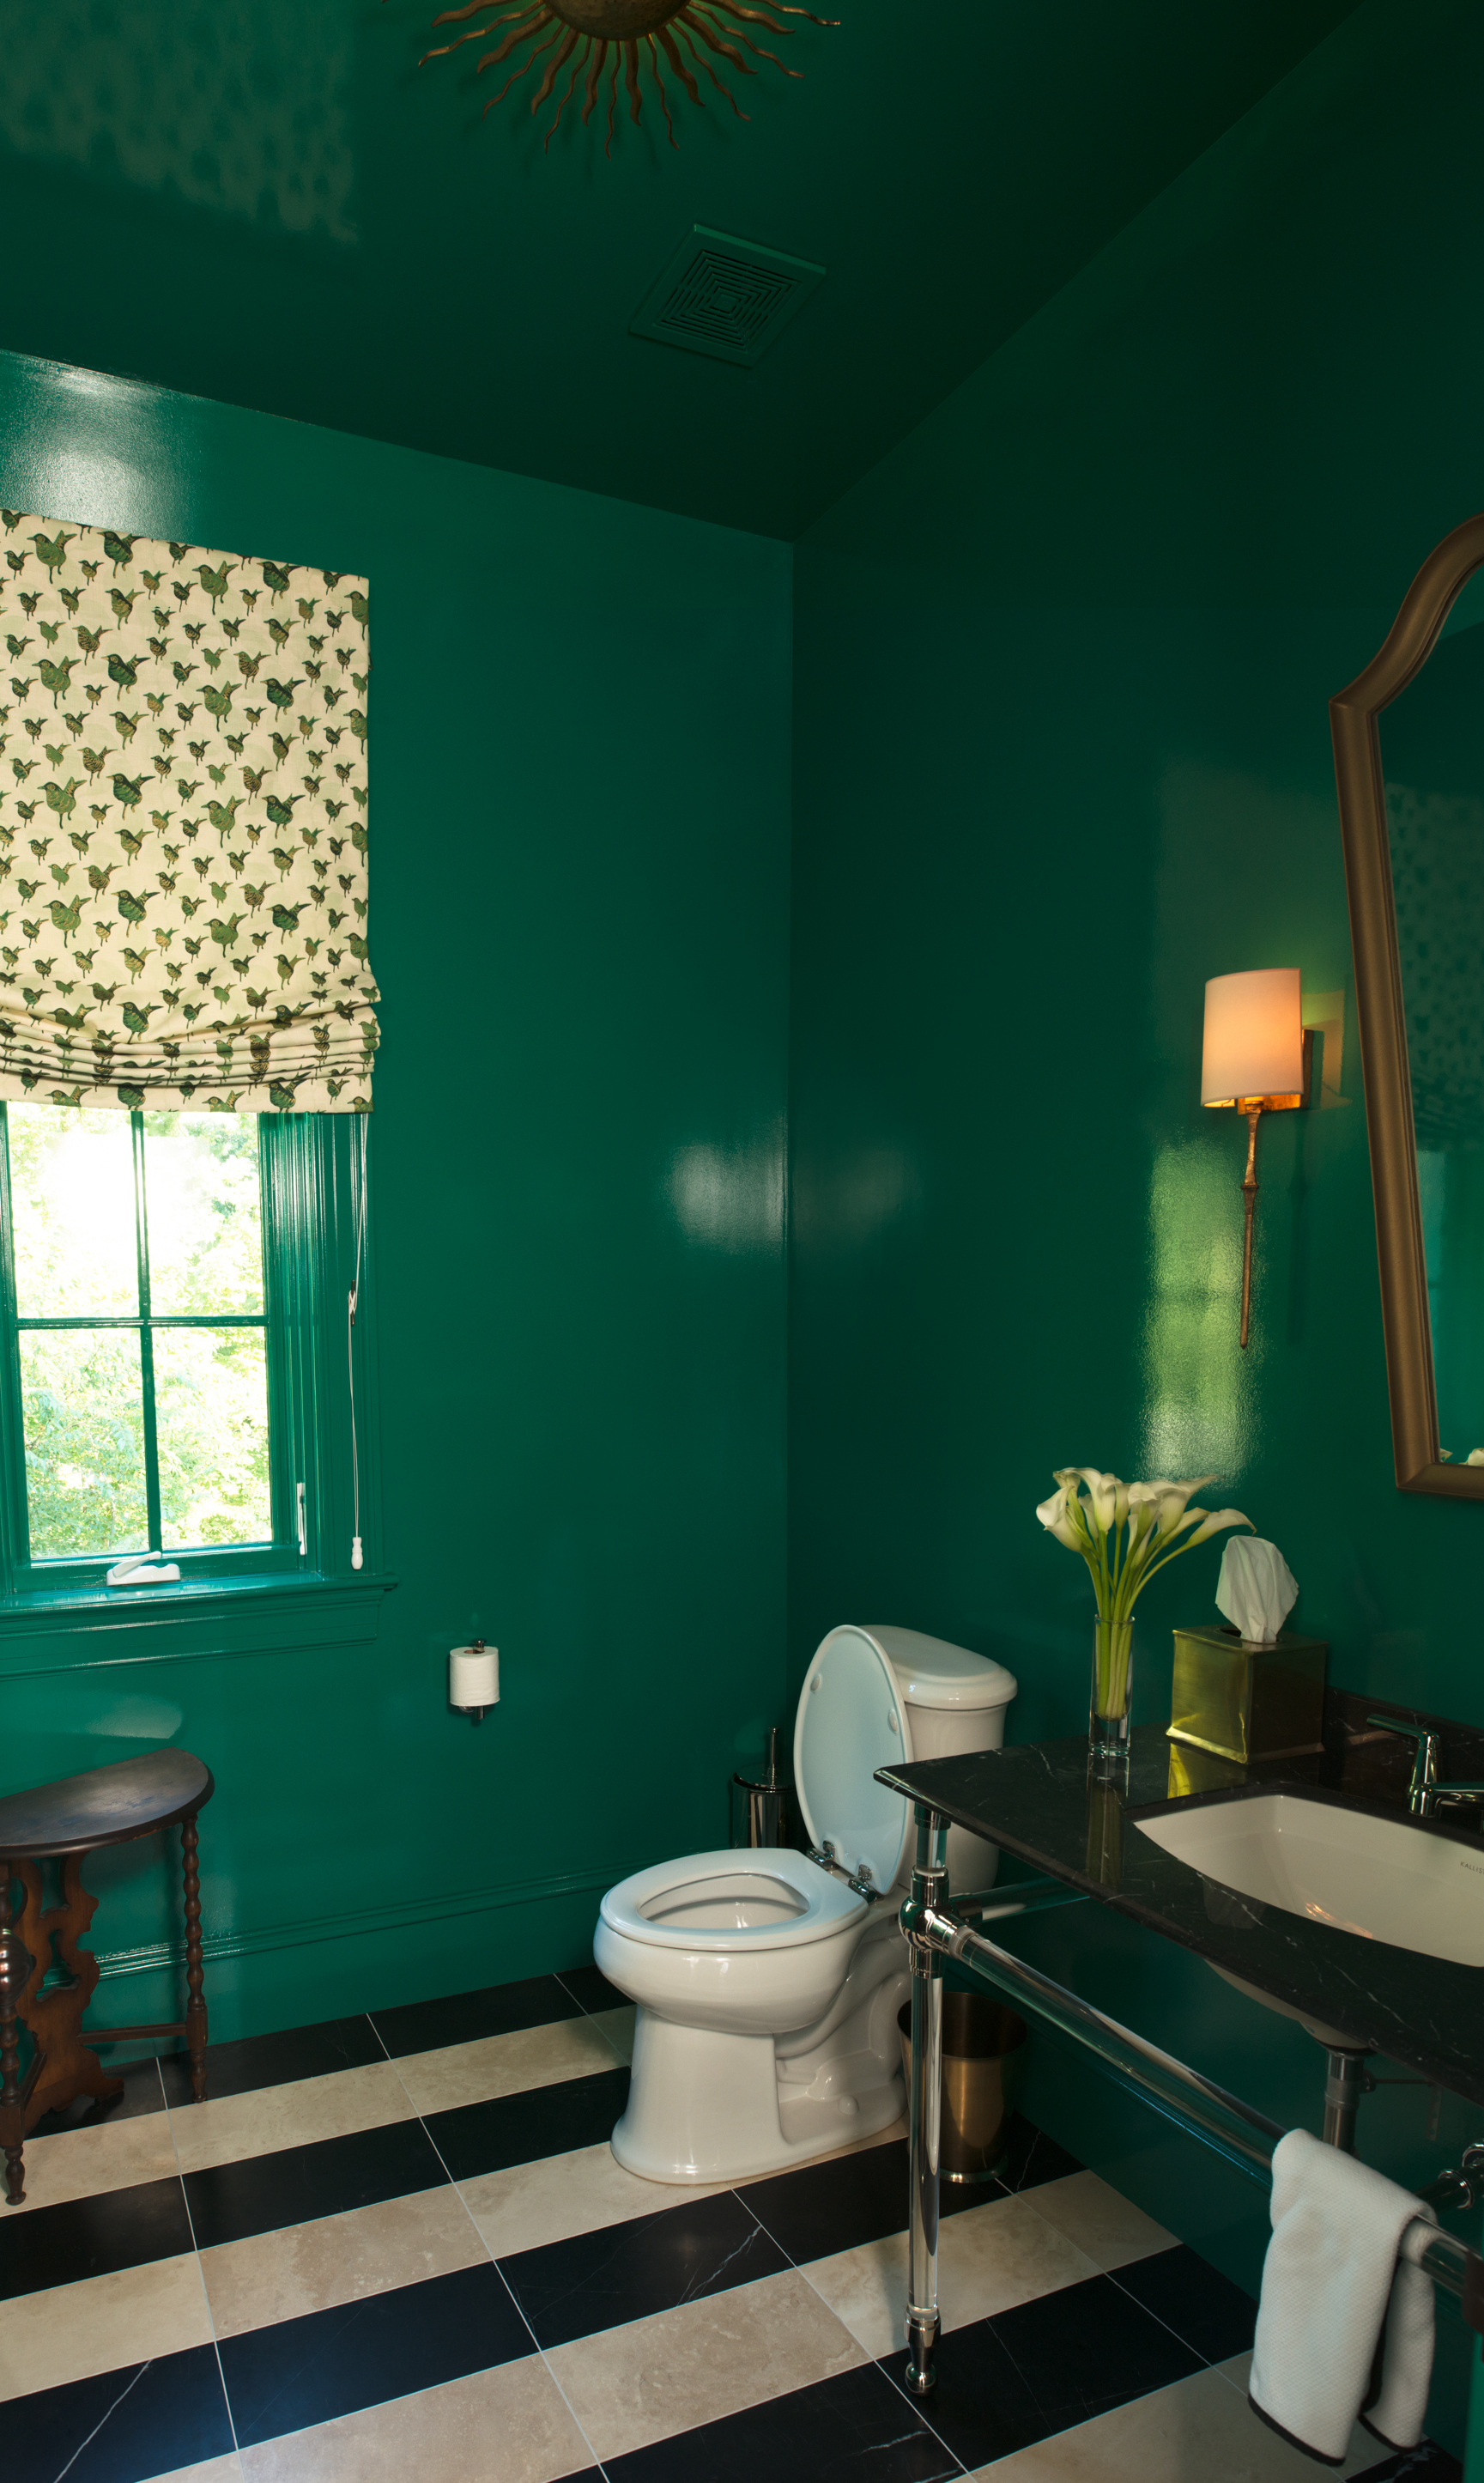 Stonington Road Powder Room